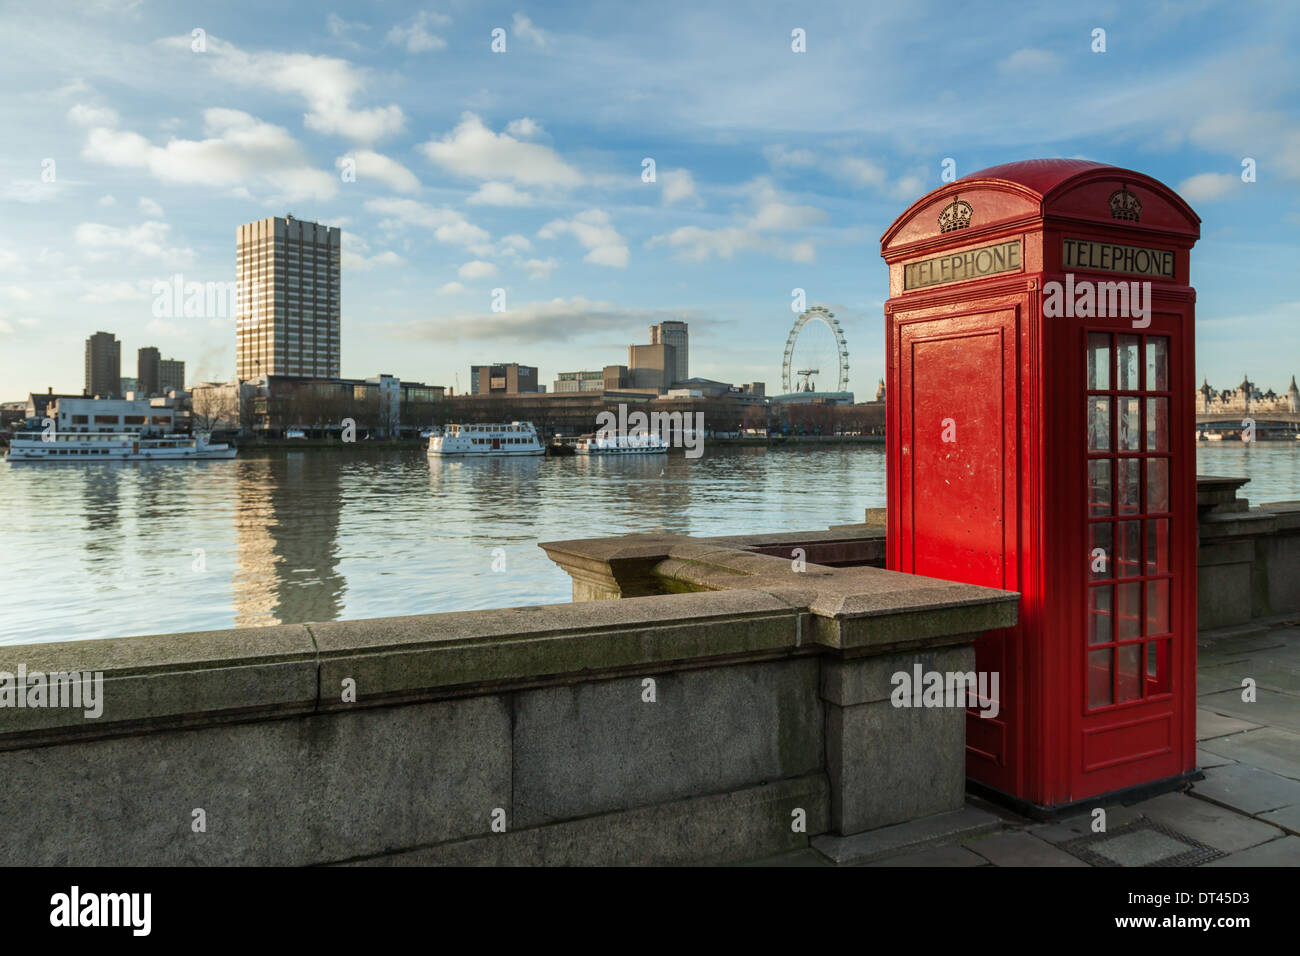 Red telephone box in London, England. - Stock Image